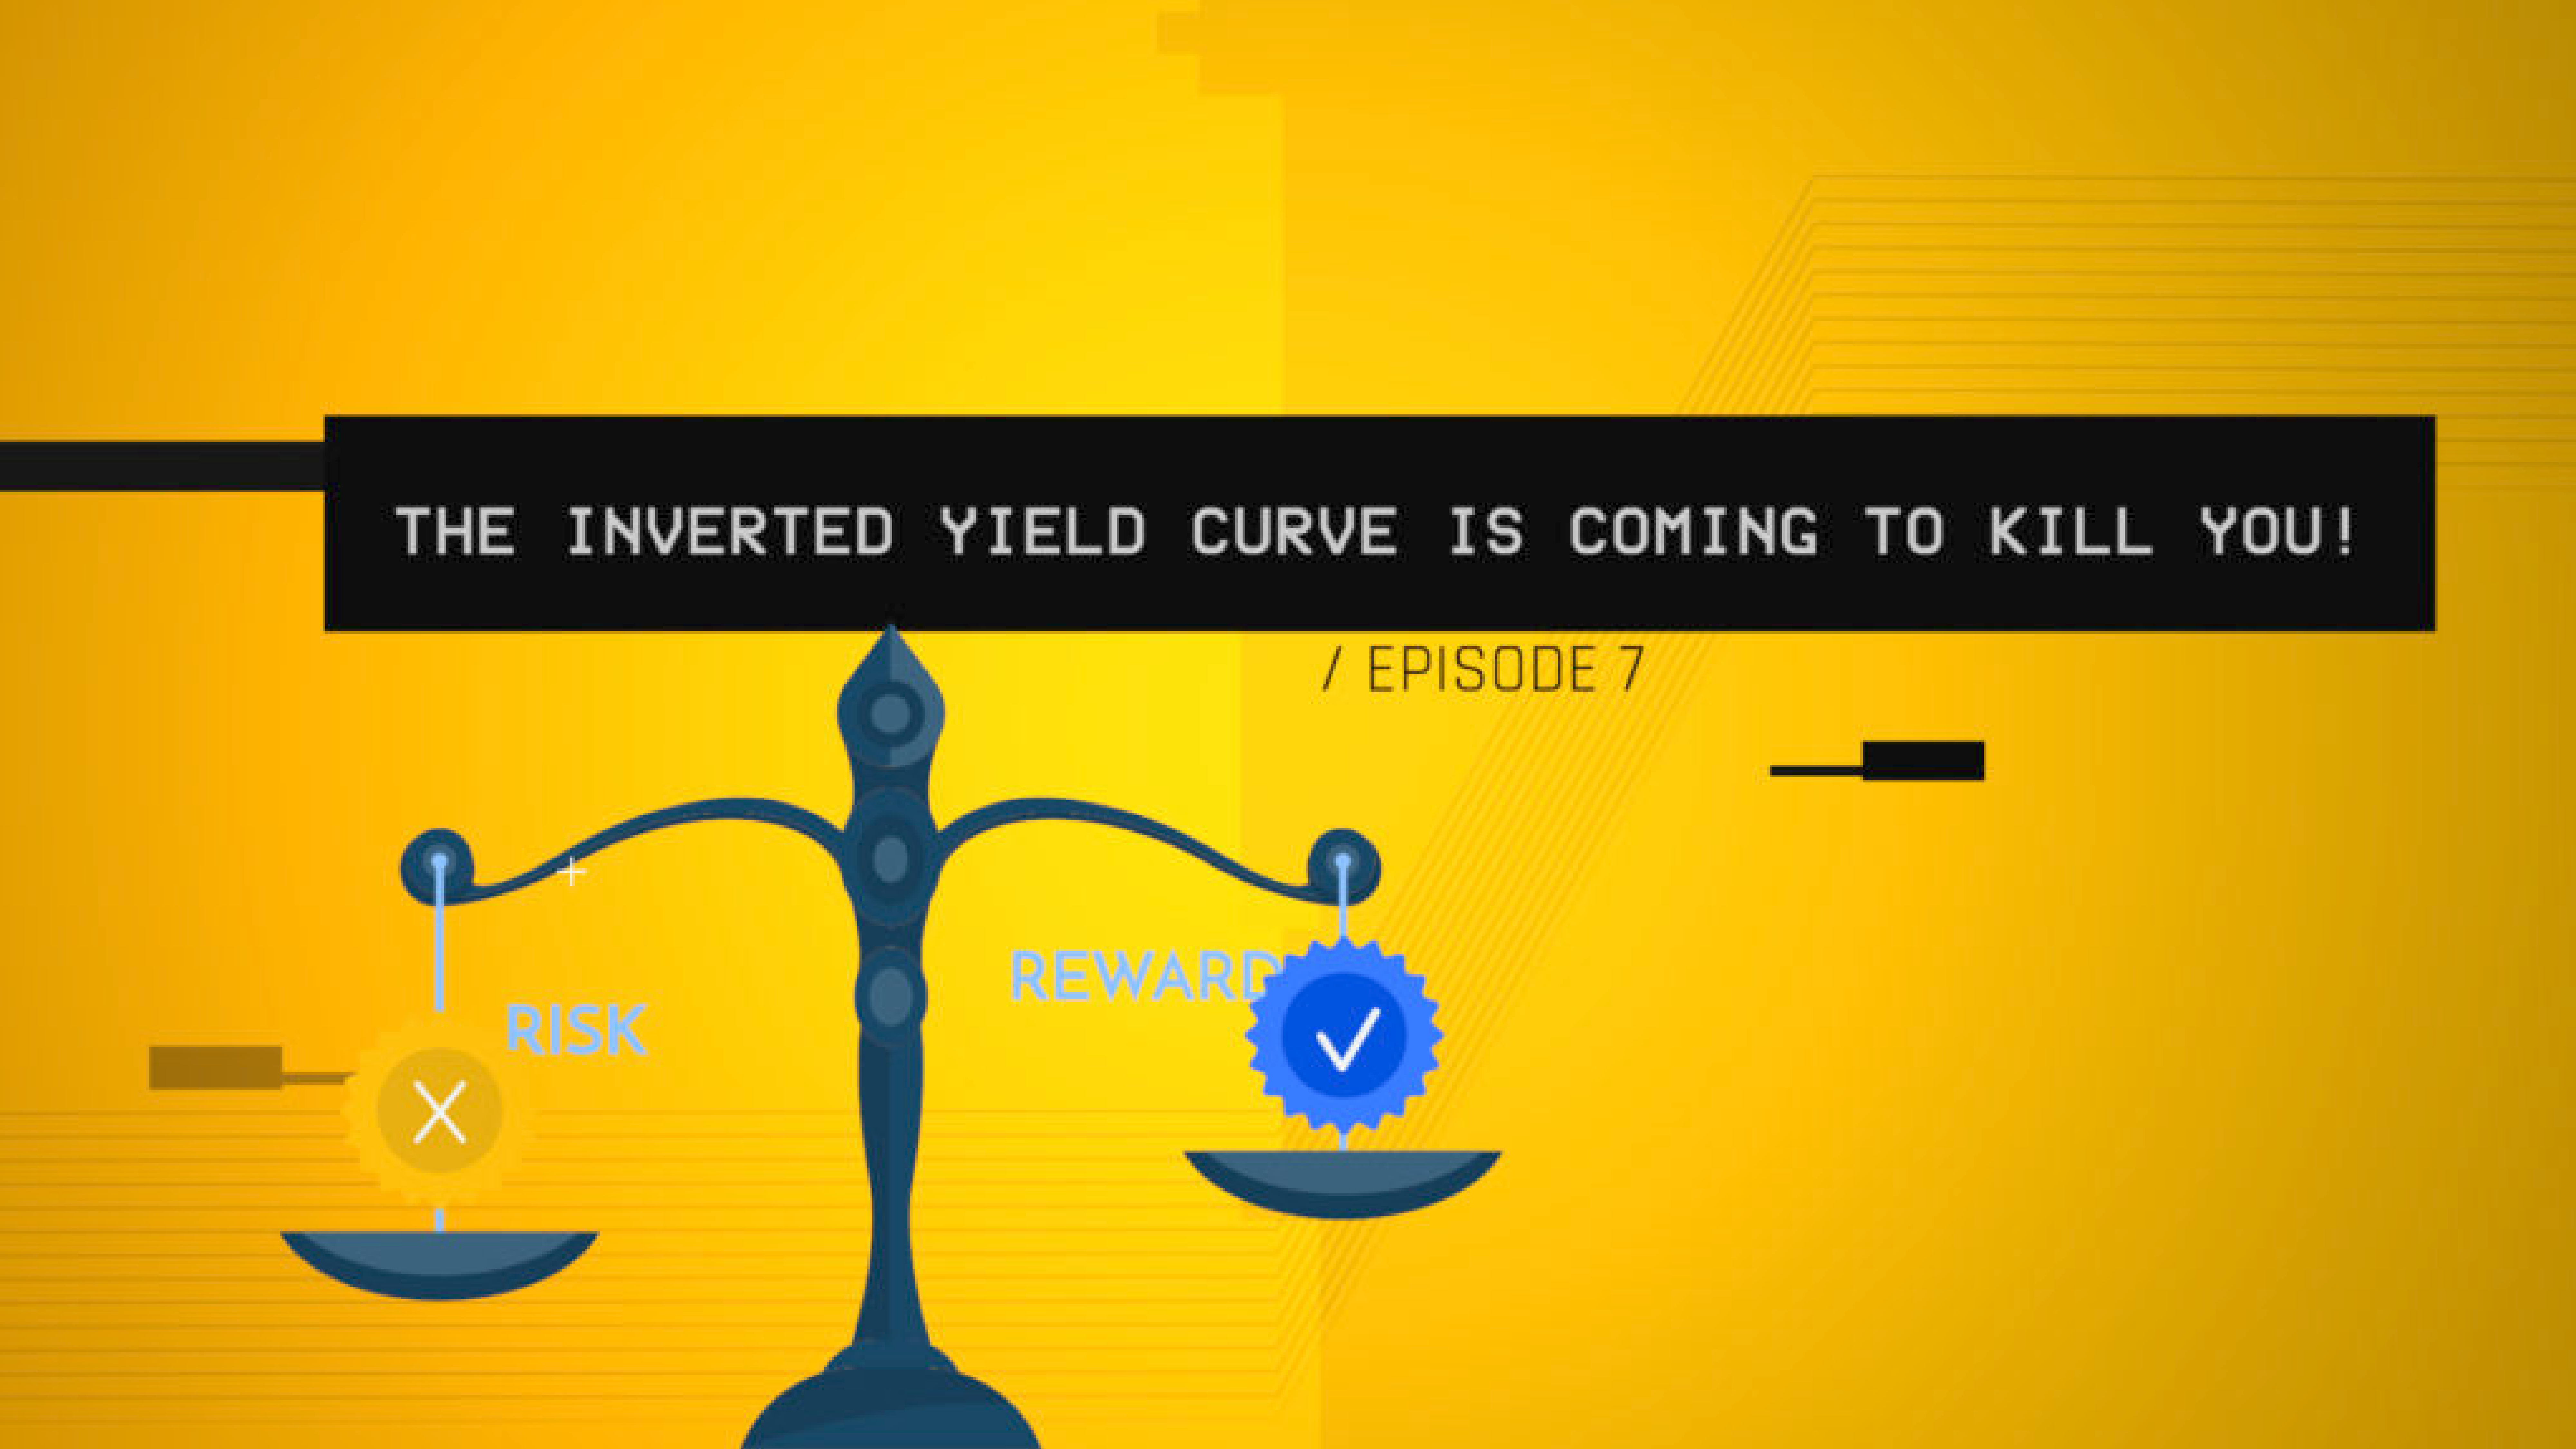 The Inverted Yield Curve is Coming to Kill You! (S1 E7)